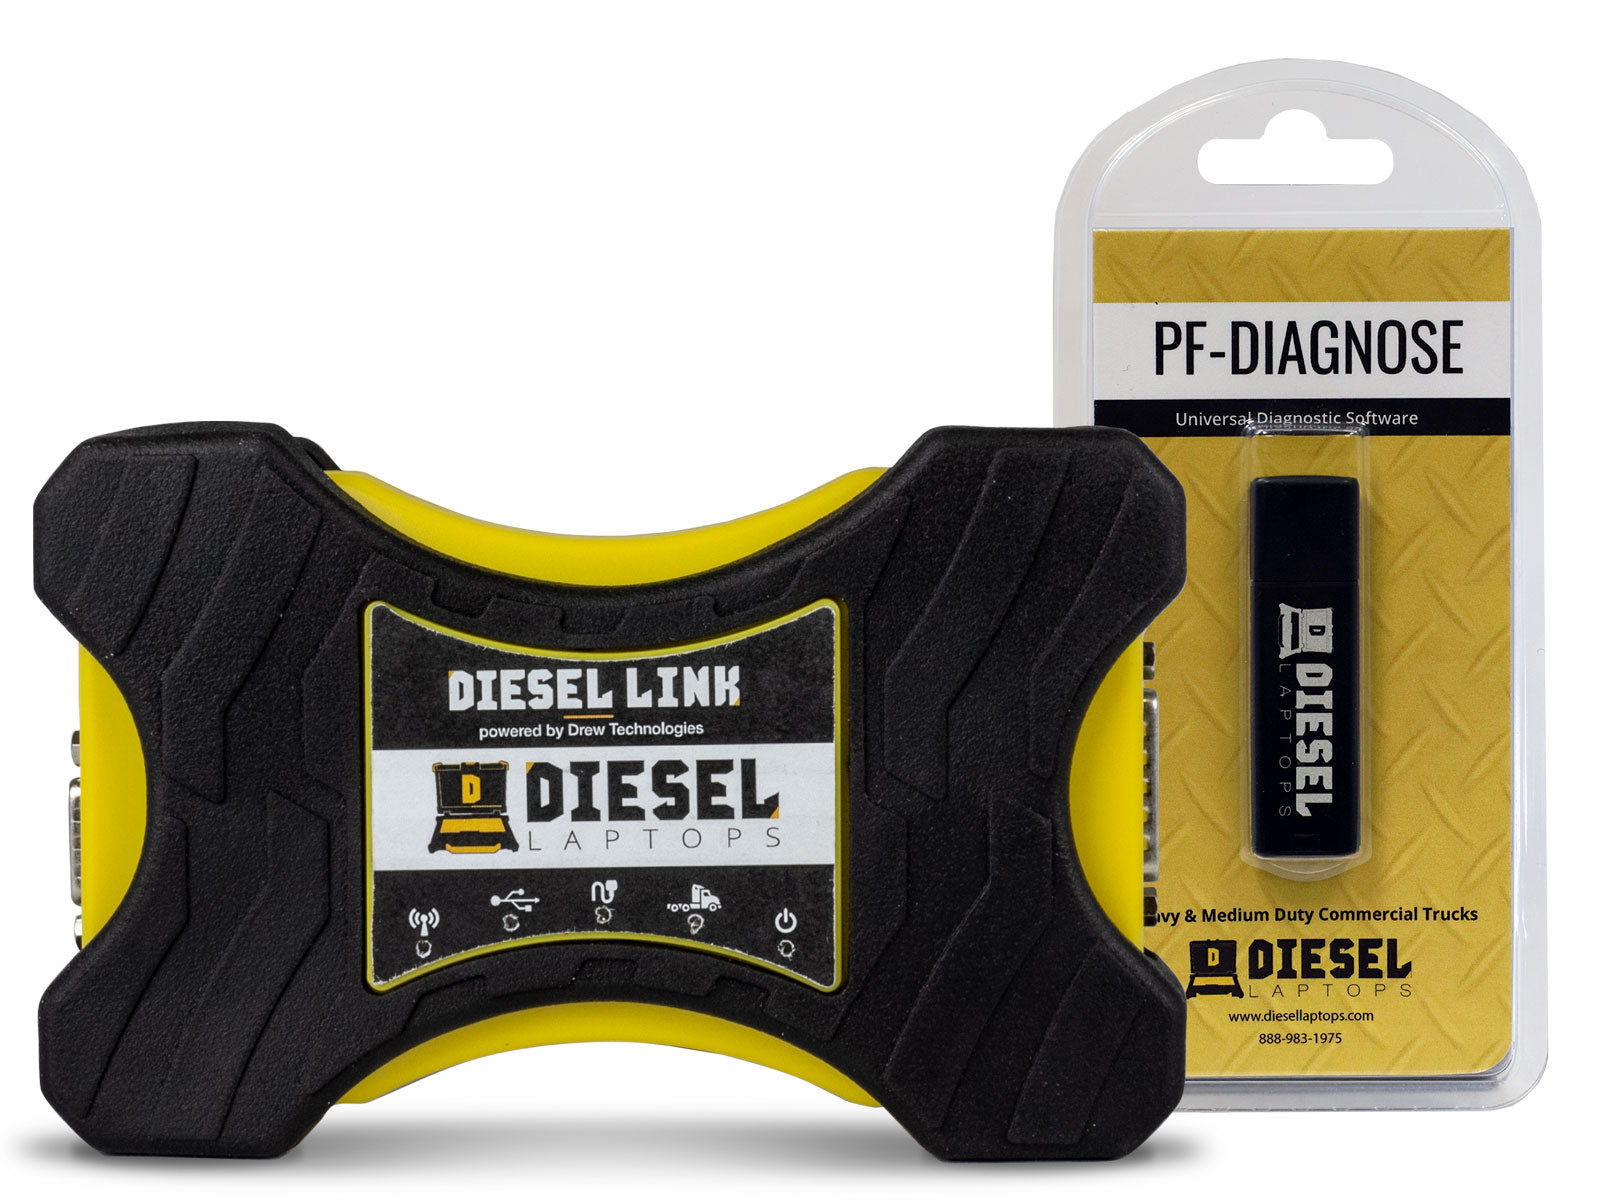 Diesel Laptops DieselLink with PF-Diagnose